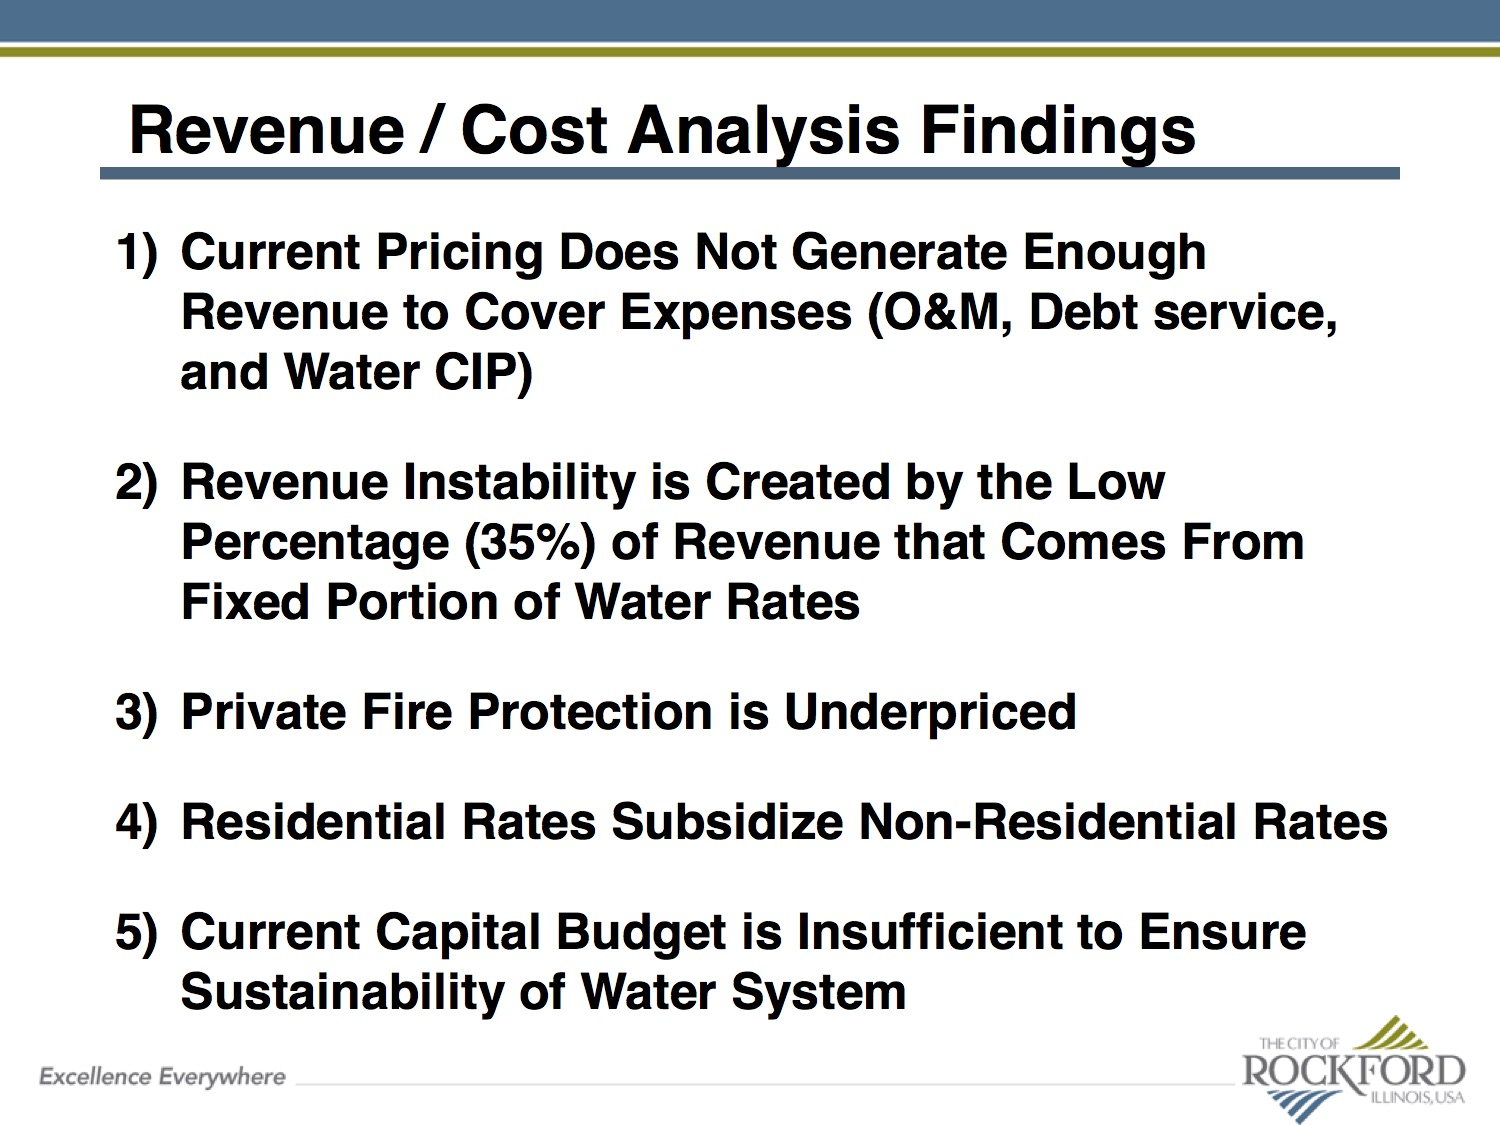 cost analysis findings.jpg